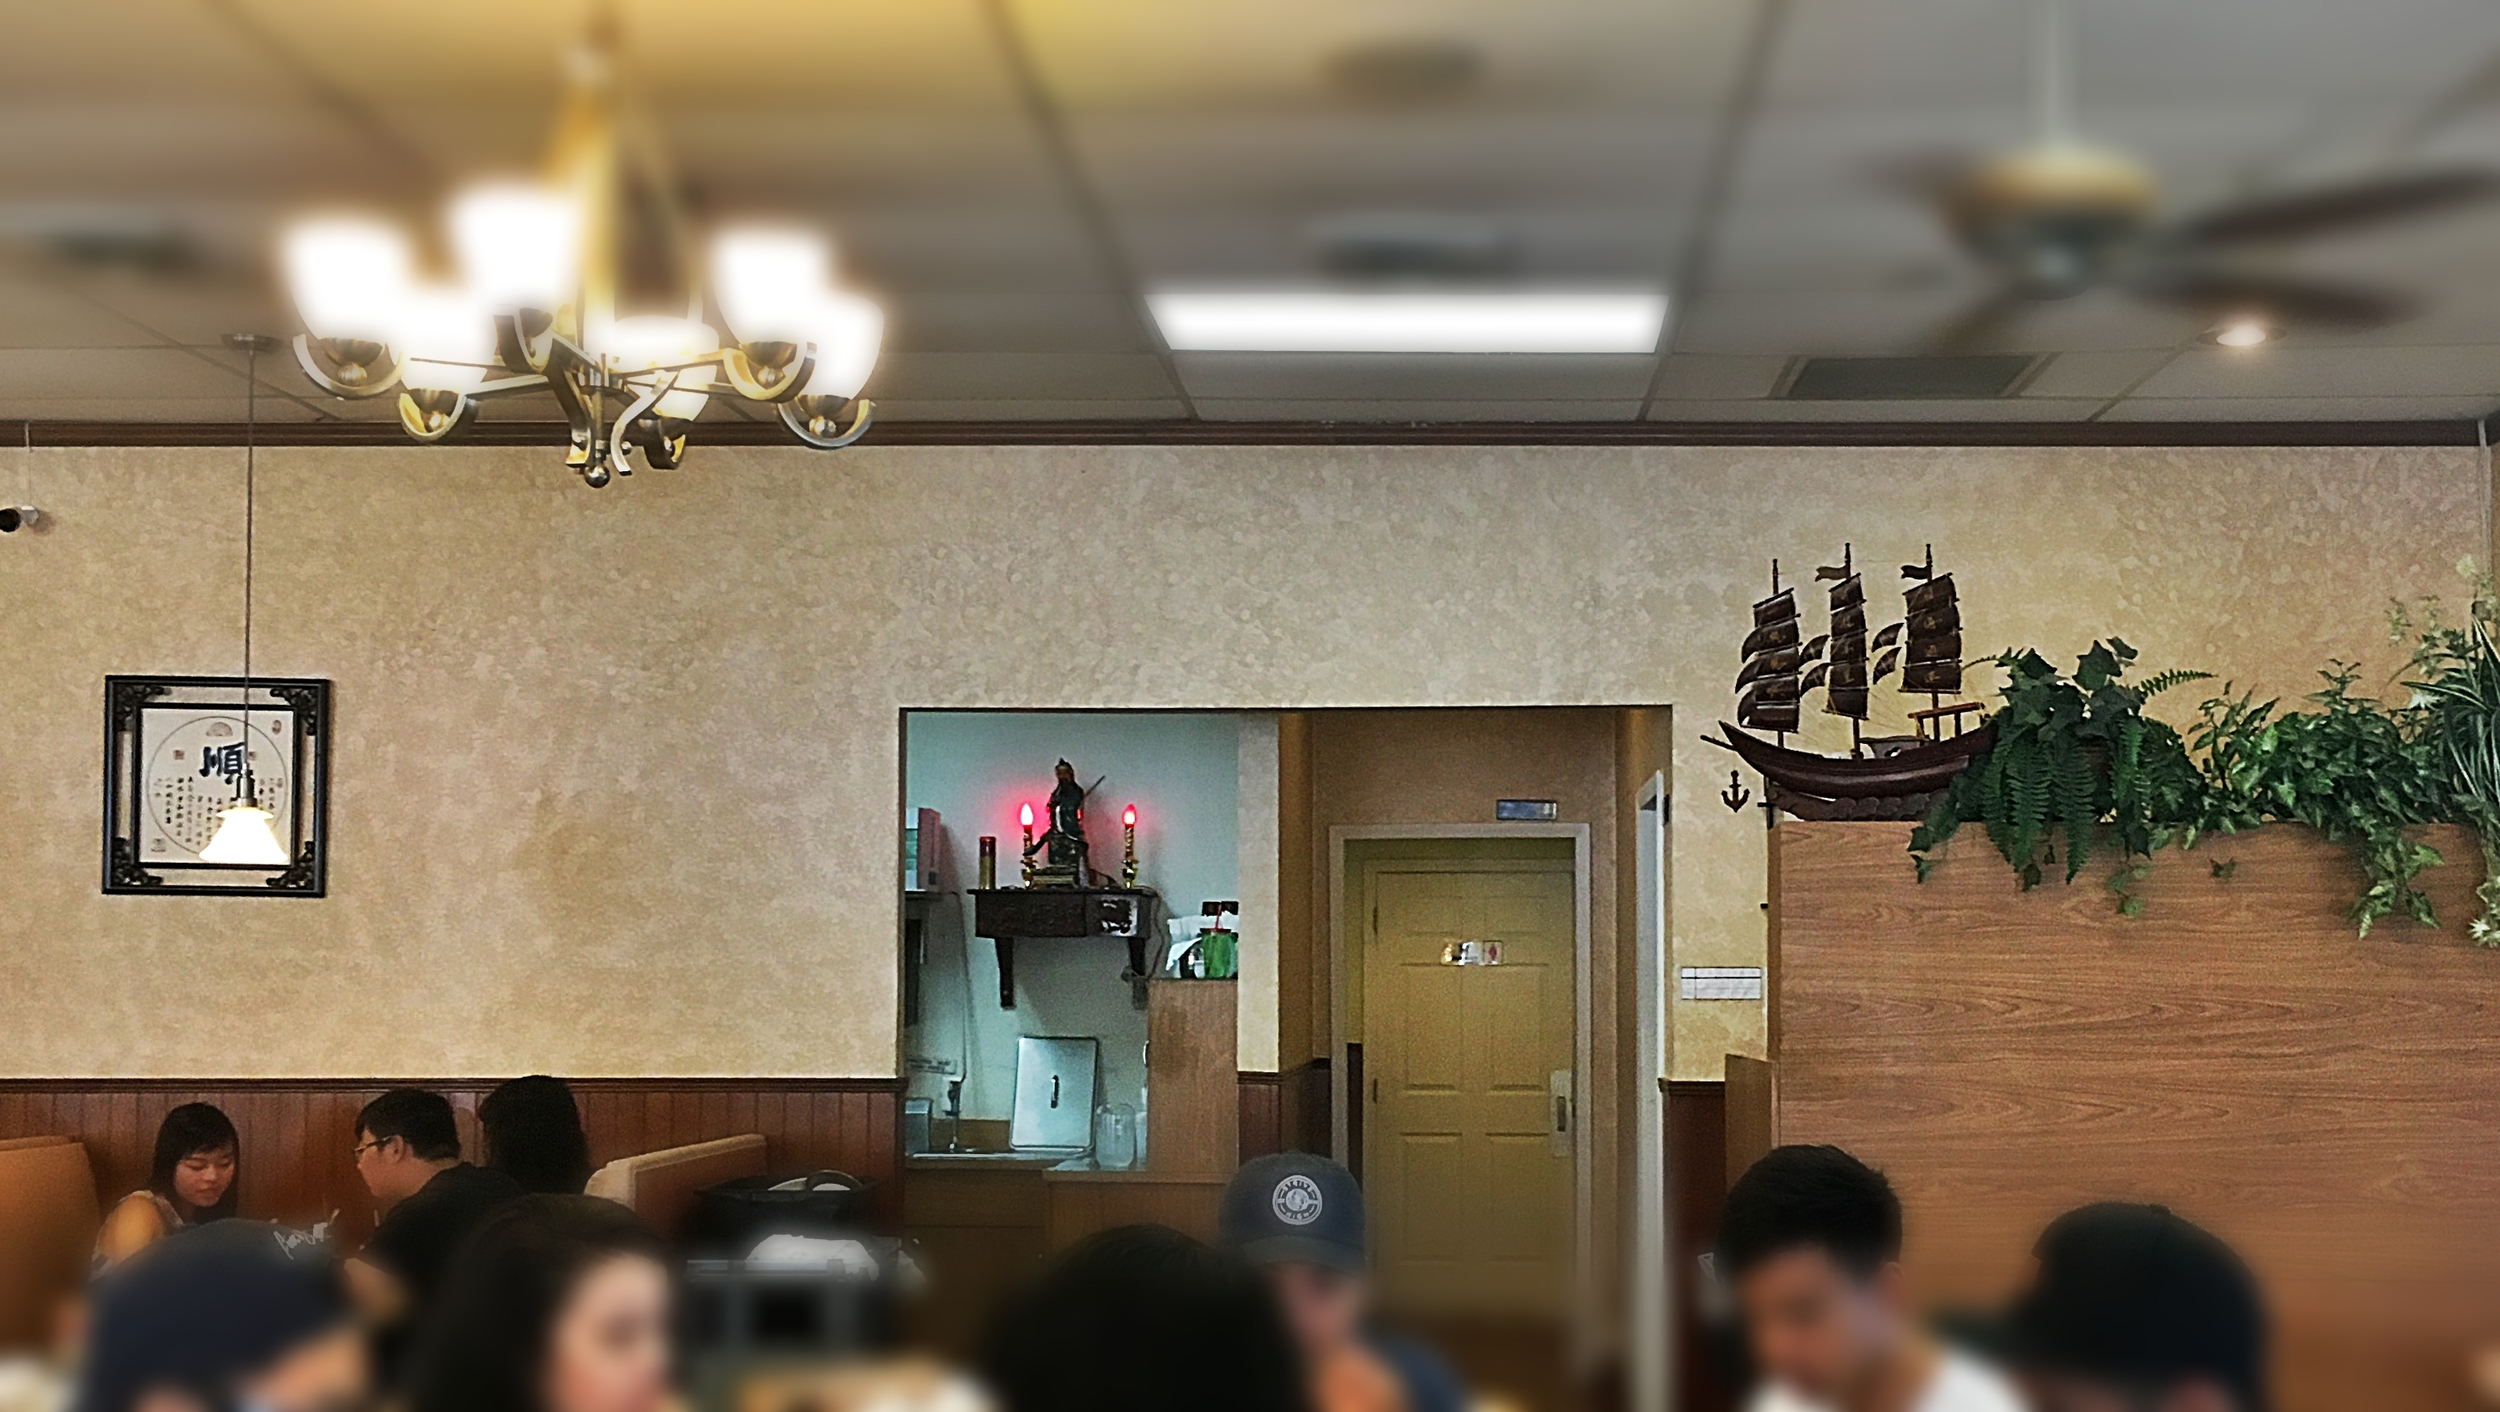 You know it's a legit chinese restaurant when you see chinese idol altars at the back. And actual chinese people dining.